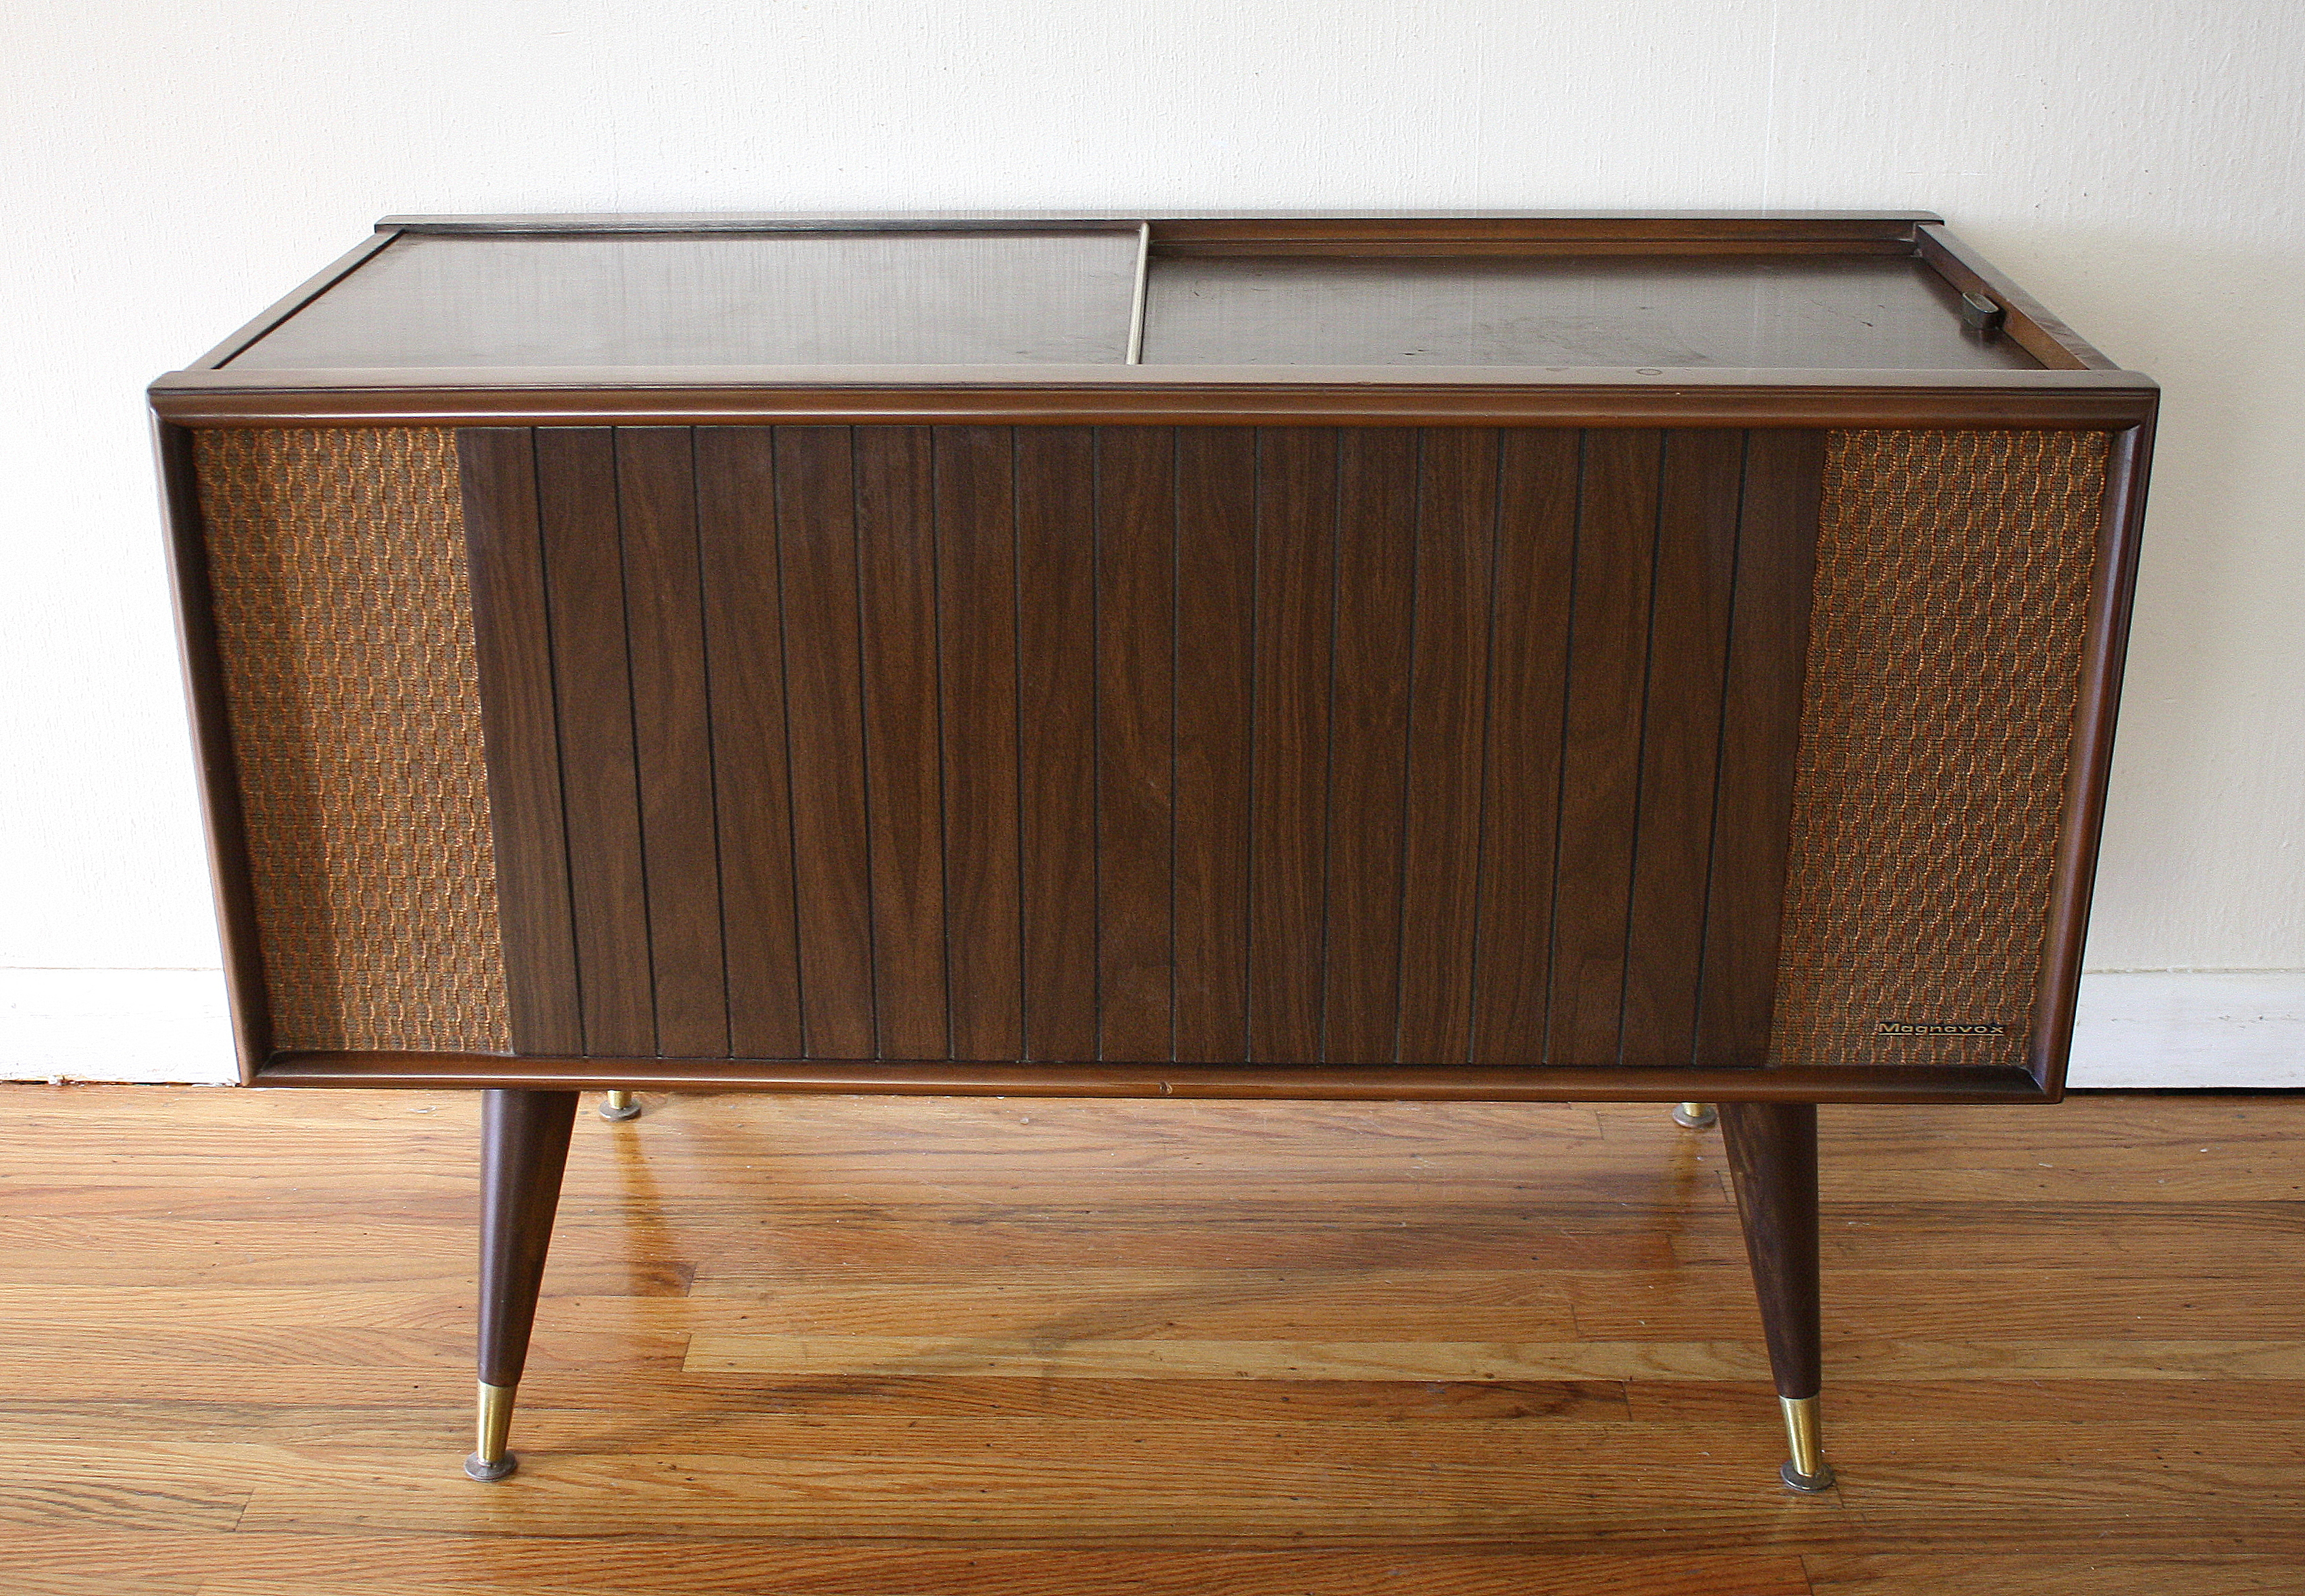 Design Record Player Cabinet mcm magnavox stereo 1 picked vintage mid century modern record player